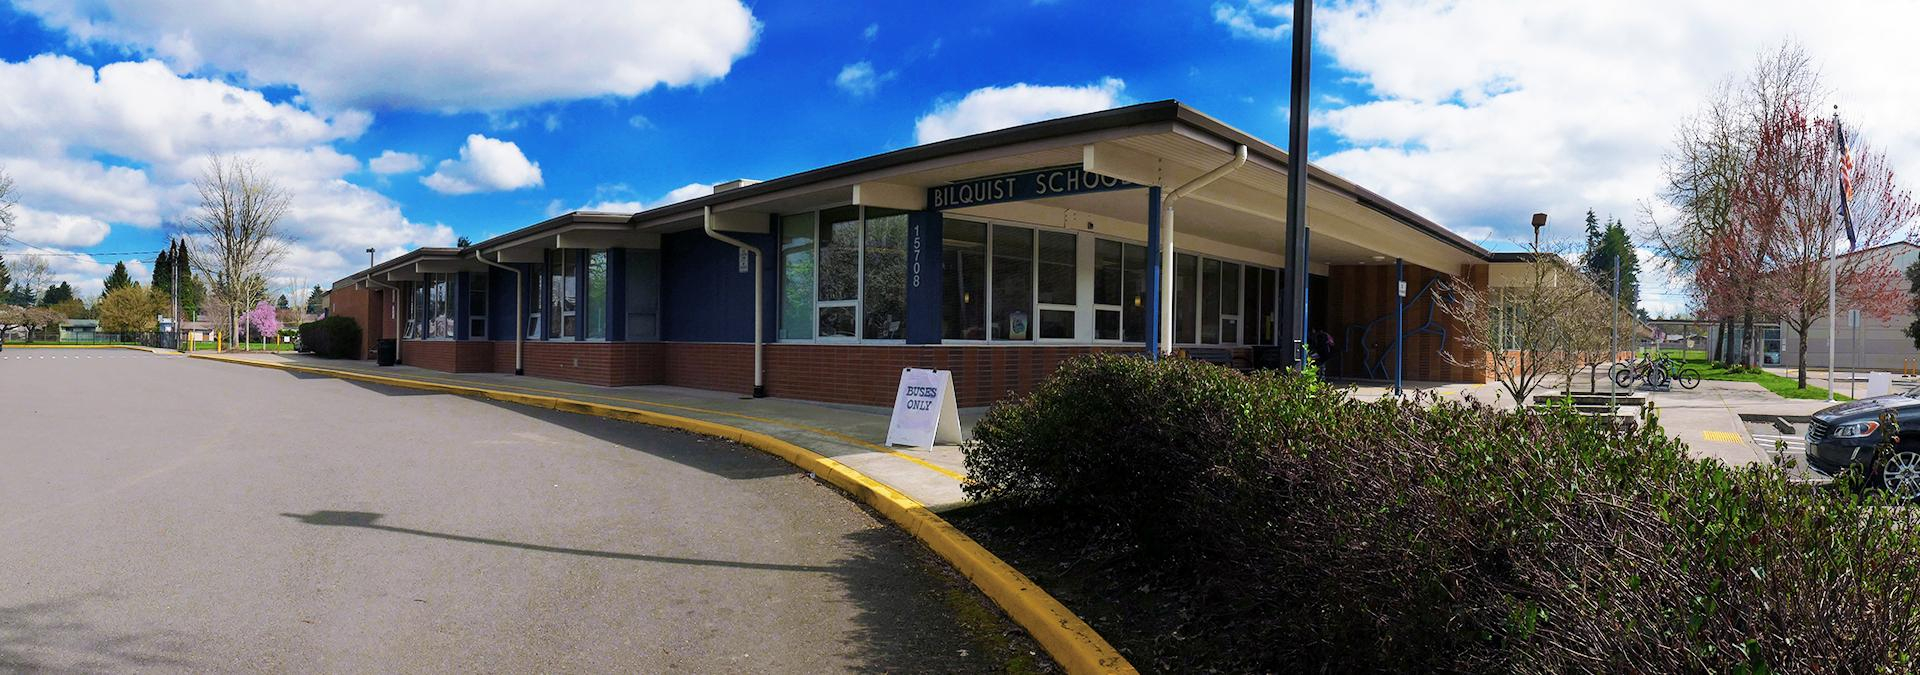 Bilquist Elementary School Bond Project | North Clackamas With North Clackamas School District Elementary Calen